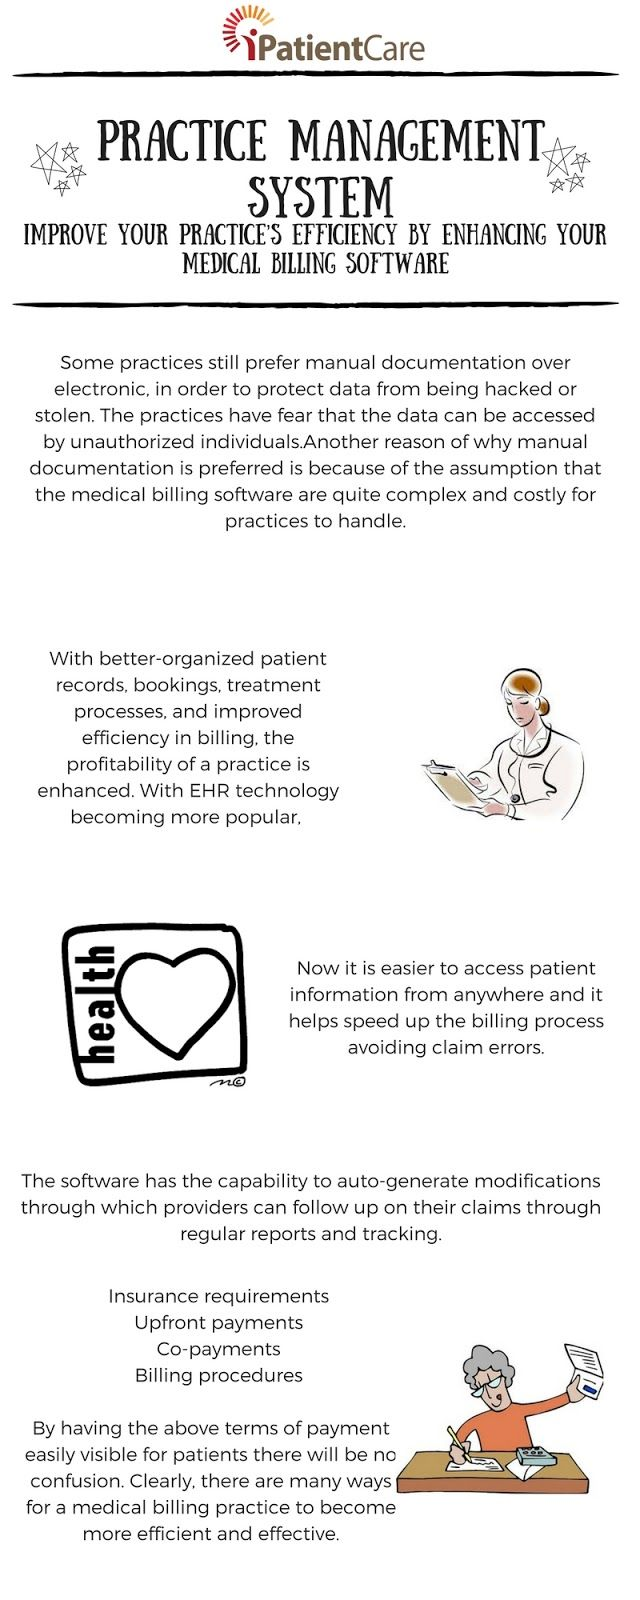 Improve your Practice's Efficiency by Enhancing your Medical Billing  Software | Healthcare Blog | Pinterest | Medical billing, Health care and  Improve ...